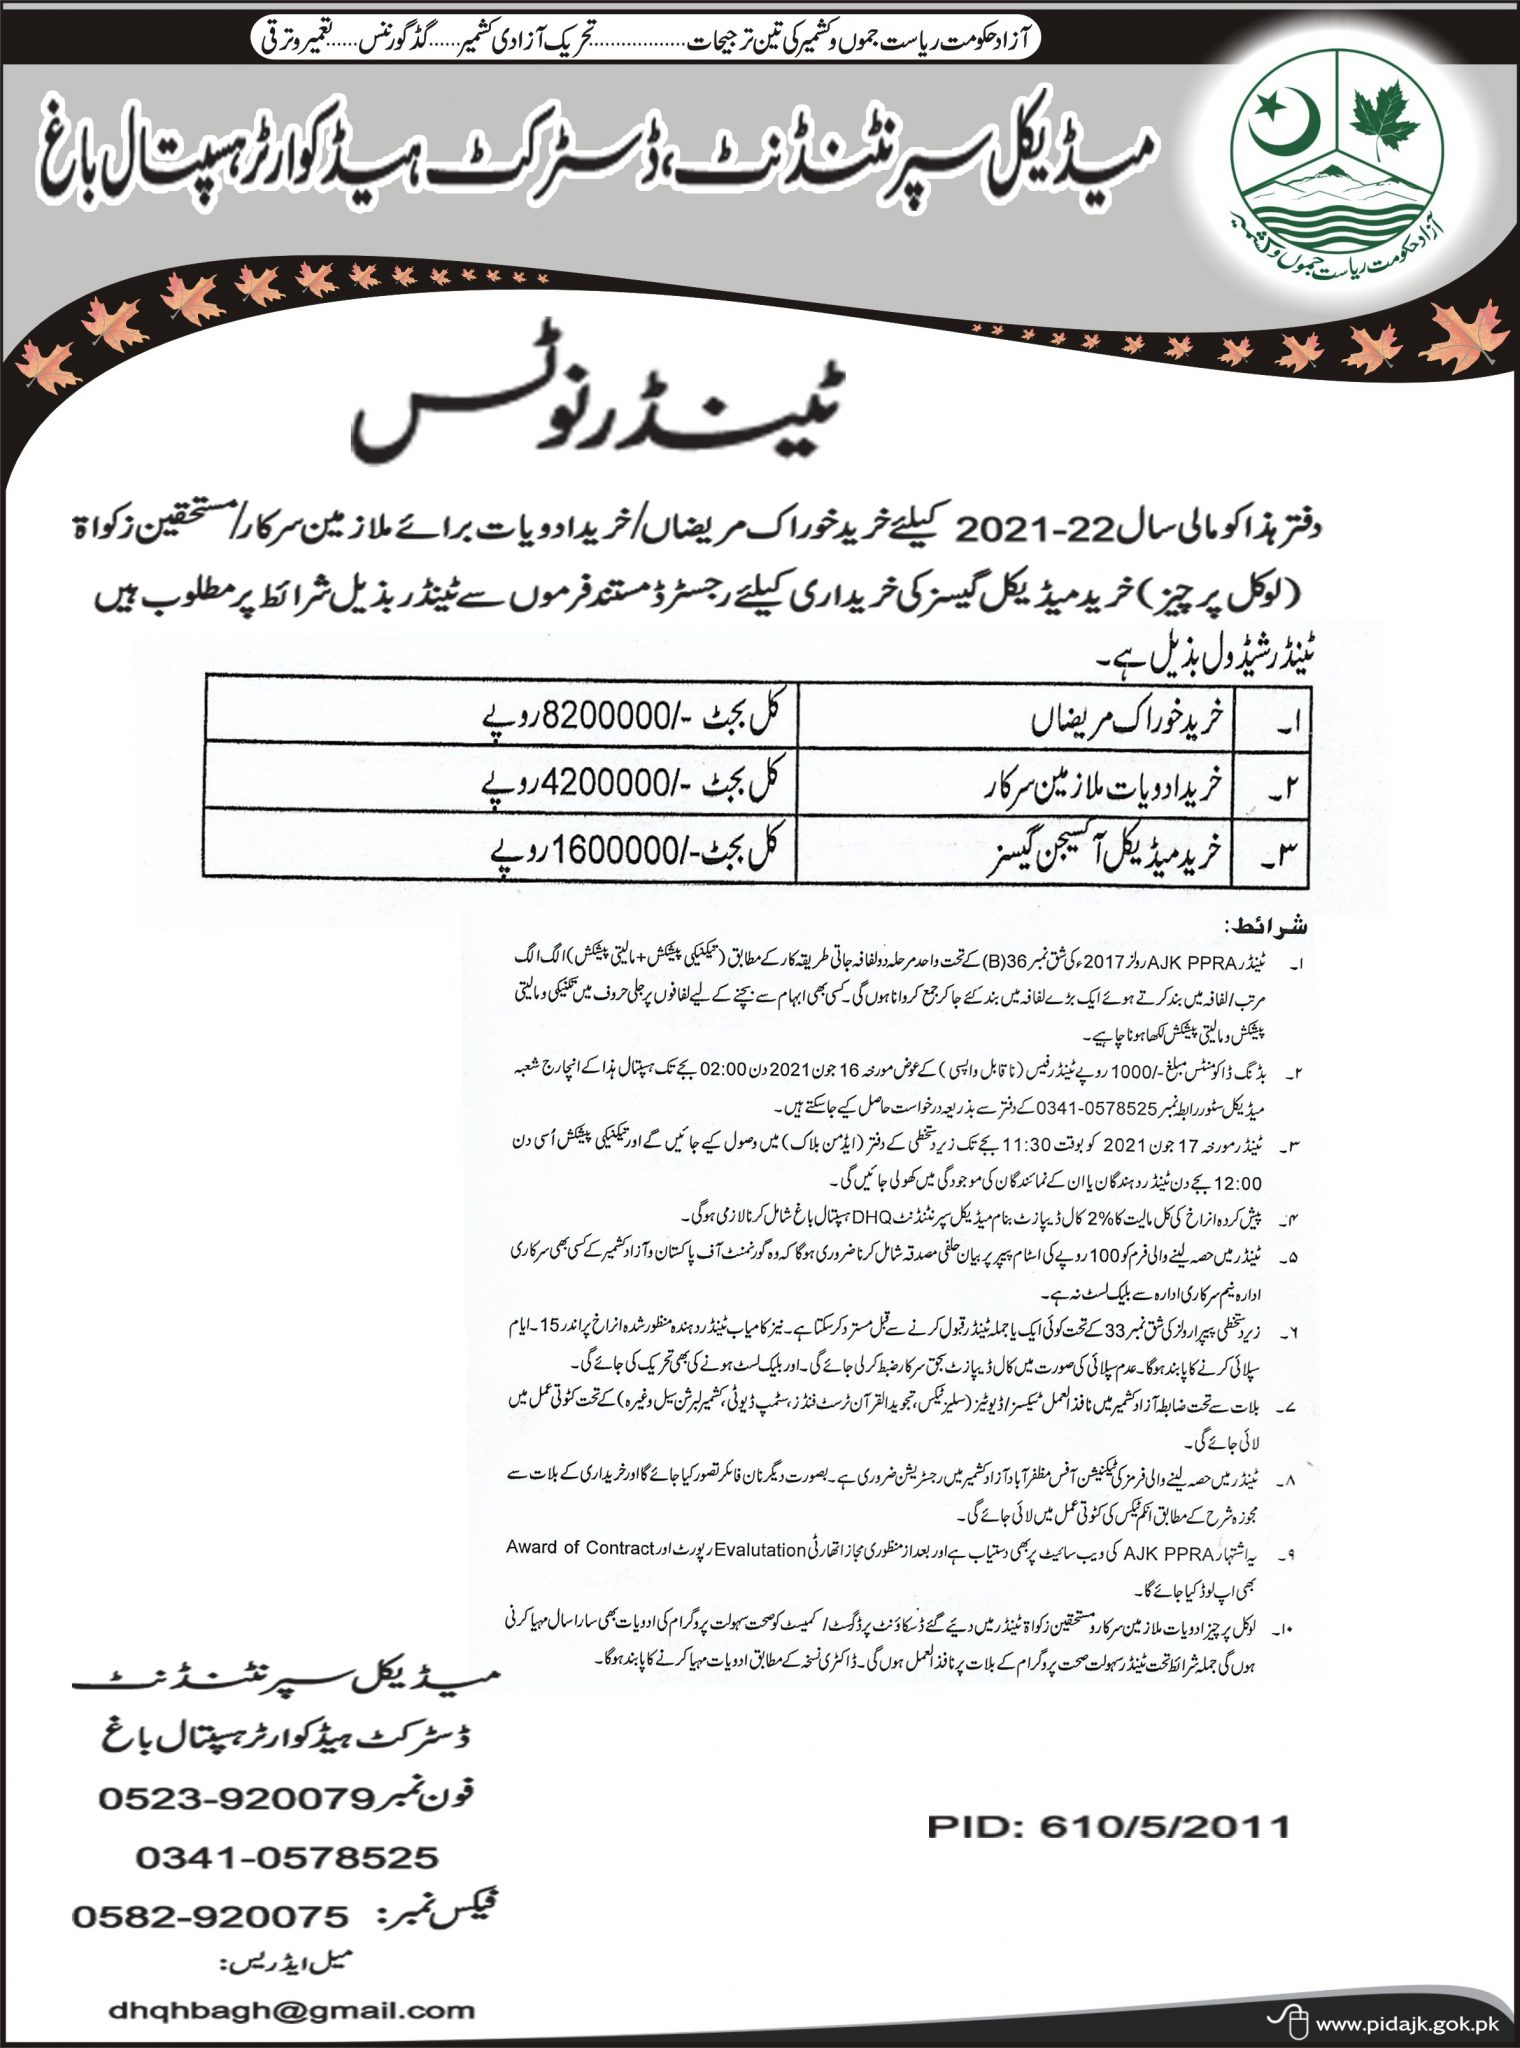 Tender notice issued for procurement of items in District Headquarters Hospital Bagh